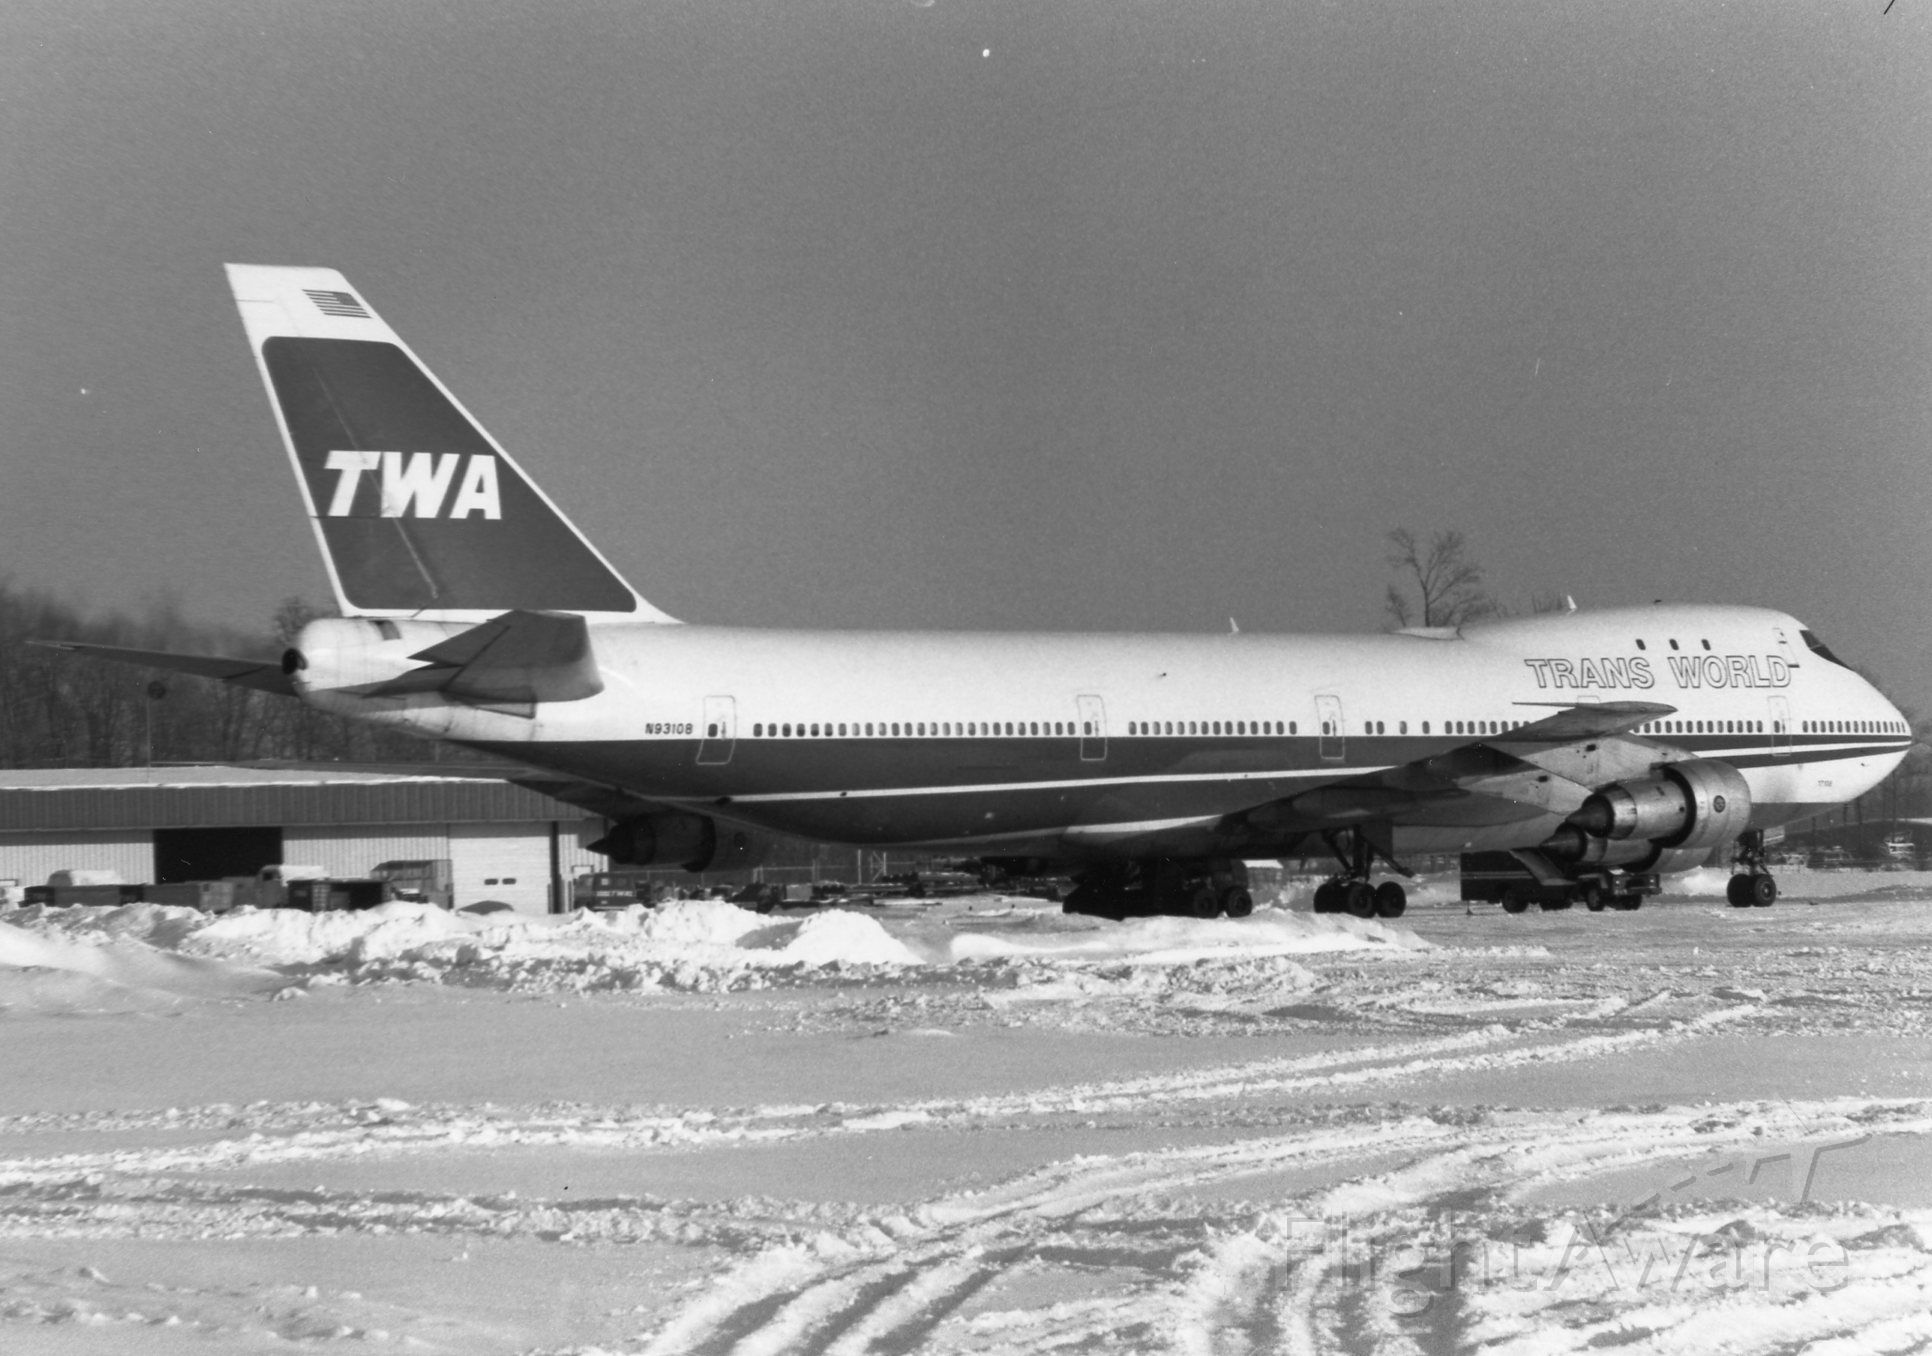 Boeing 747-200 (N93108) - A diversion to IND, most likely flight 771 from London to ORD.  Worth the trip out to the airport in the snow to see this rare late 1970s visitor!